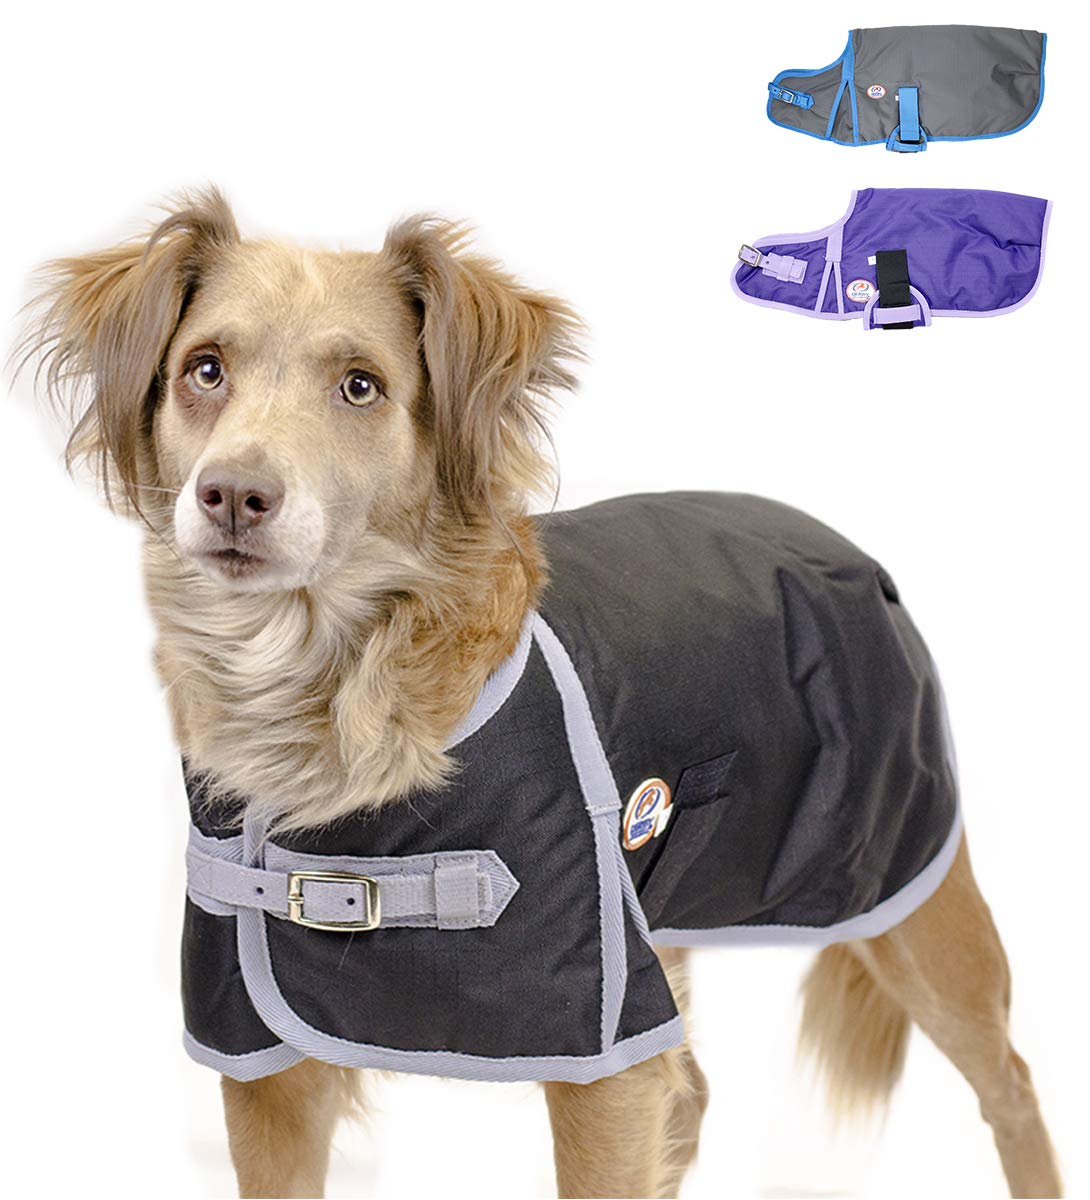 Derby Originals Horse Tough 600D Waterproof Ripstop Dog Coat with 1 Year Warranty - Medium Weight 150g Polyfil & No Rub Breathable Lining  - Solid Design in Multiple Colors & Sizes